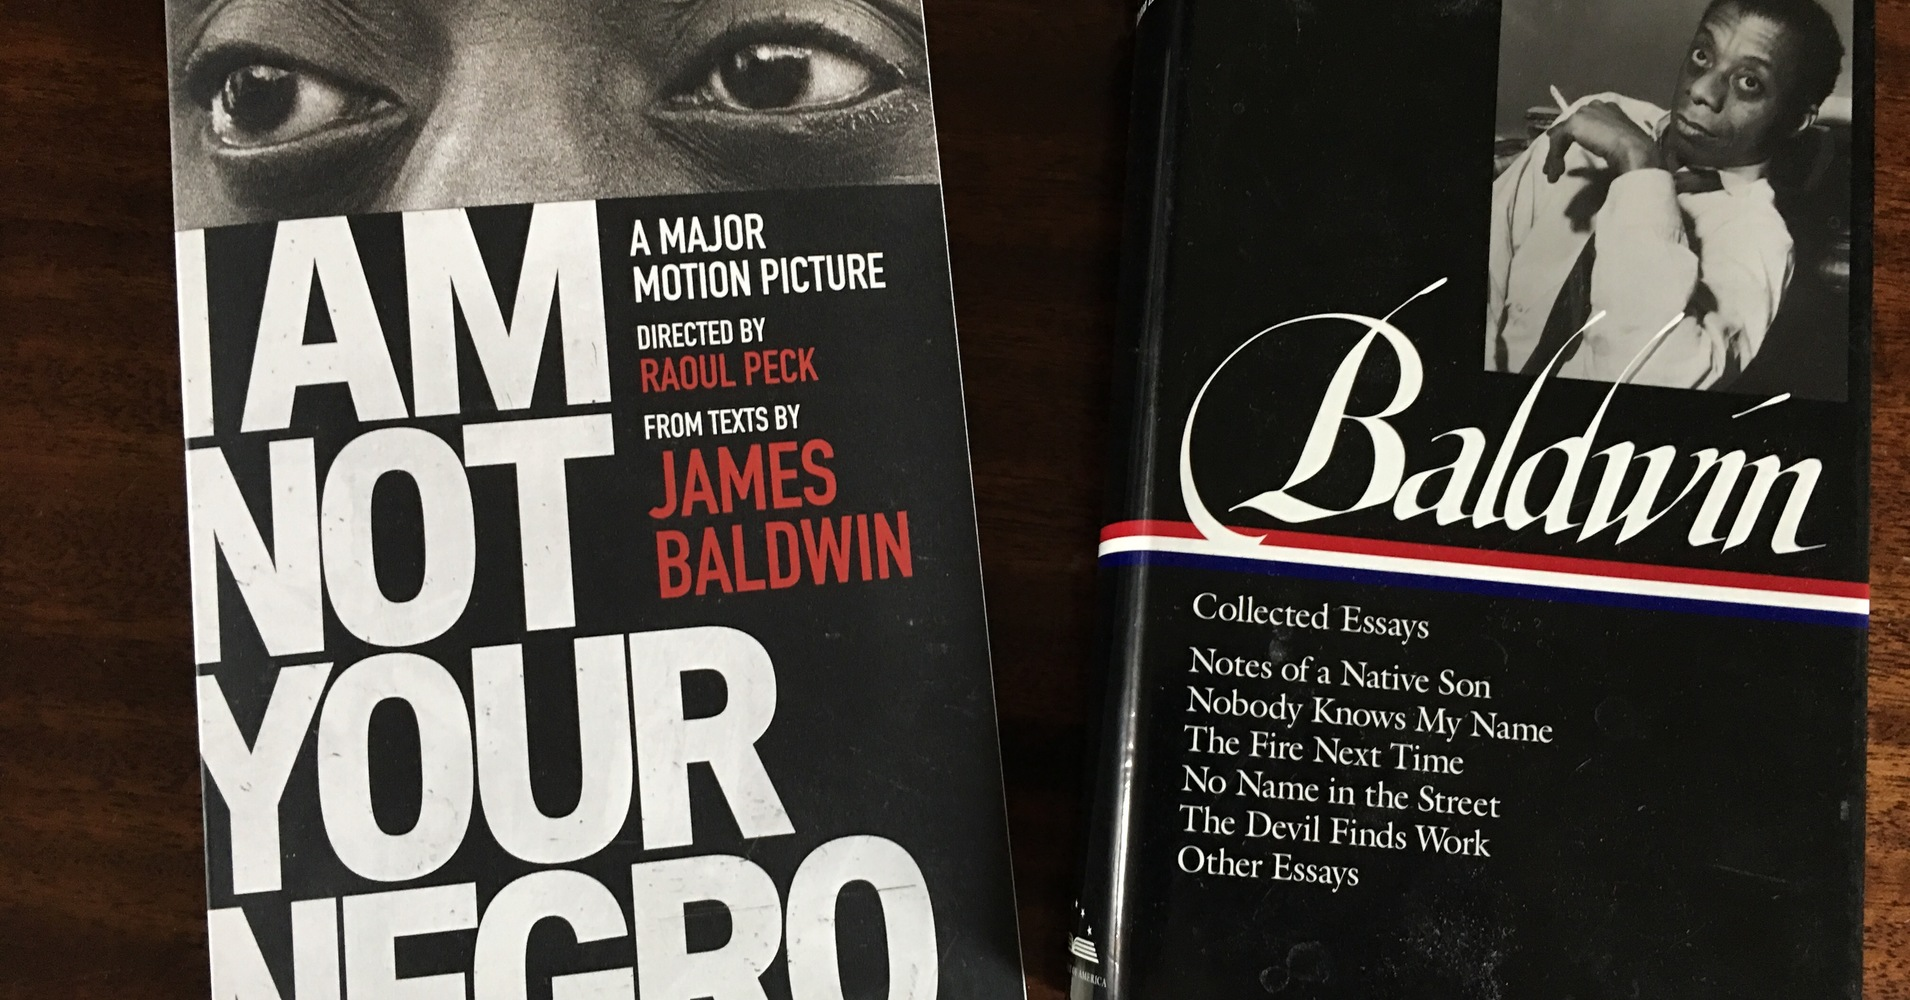 002 Essay Example James Baldwin Collected Essays 58b34c852900002700f28d18ops1910 1000 Wondrous Google Books Pdf Table Of Contents Full